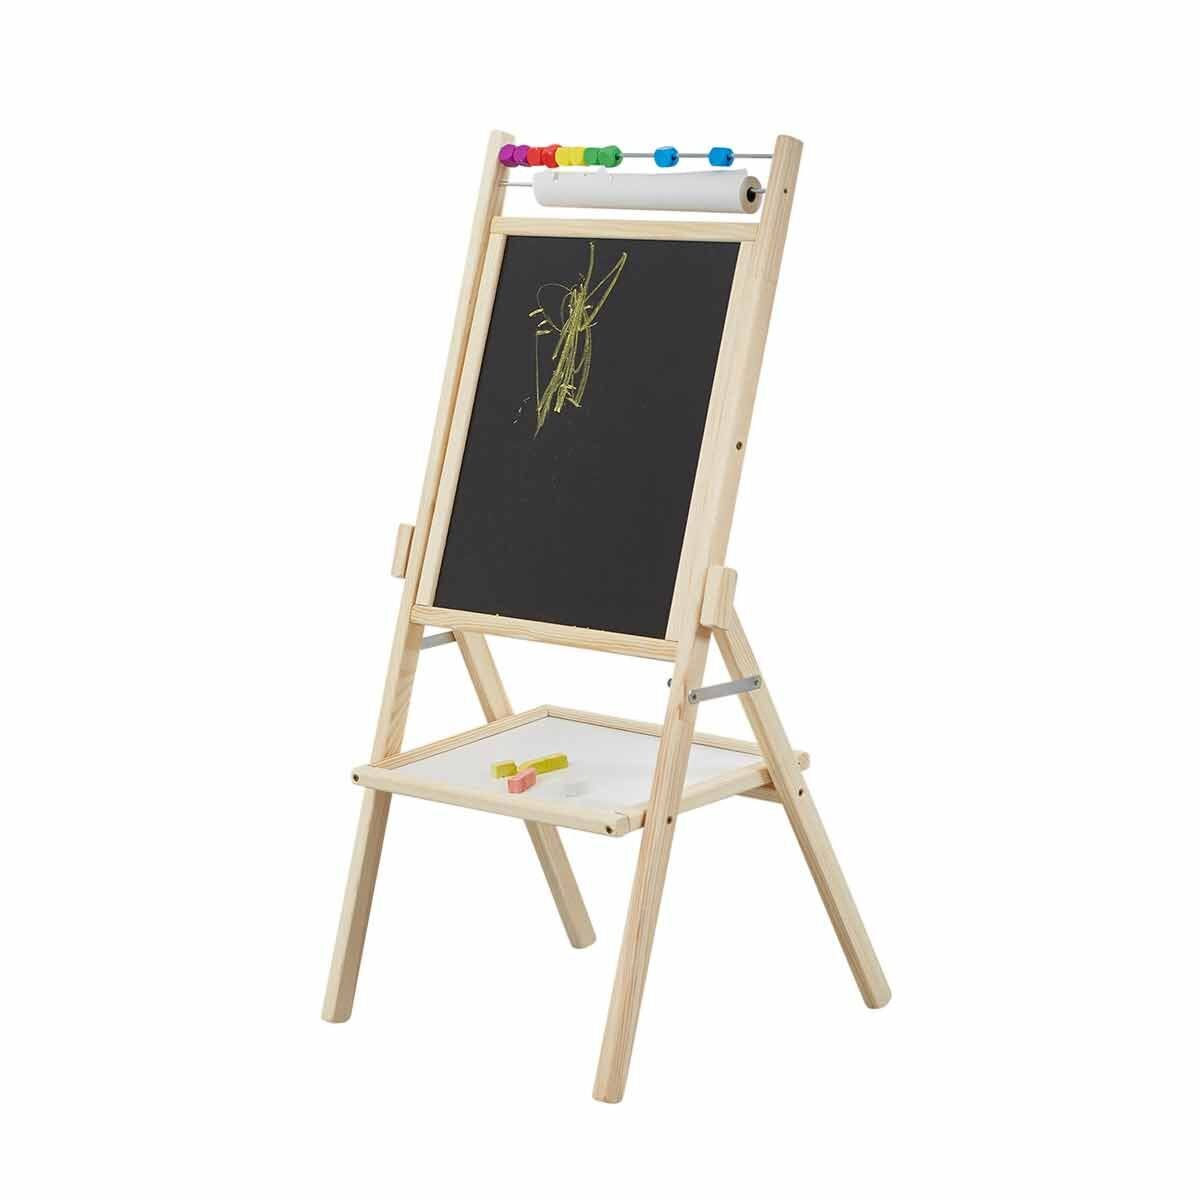 Liberty House Toys 4 in 1 Rotary Easel with Accessories